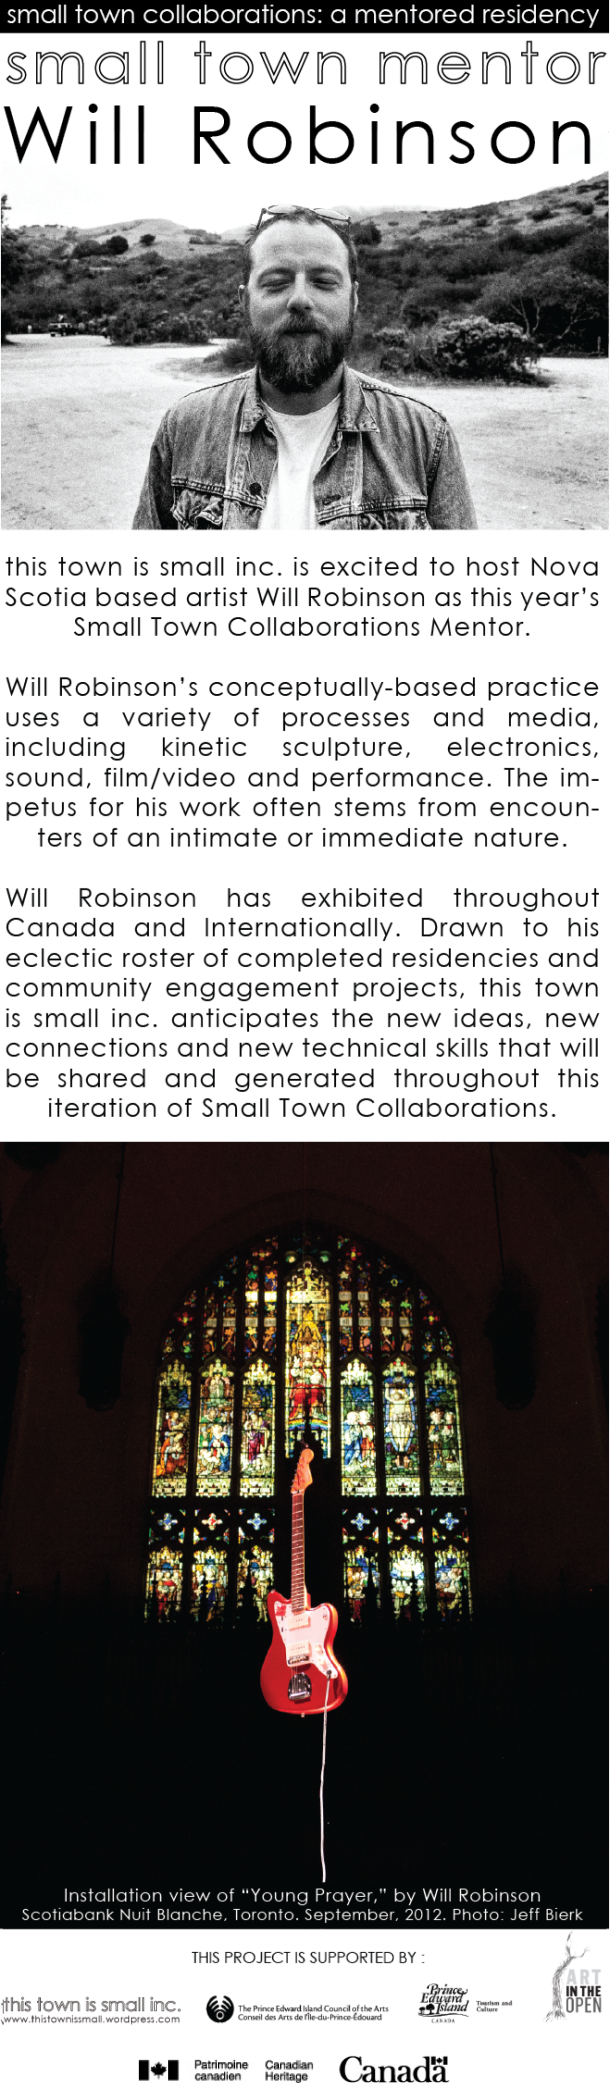 Small town collaborations PAGE 2013